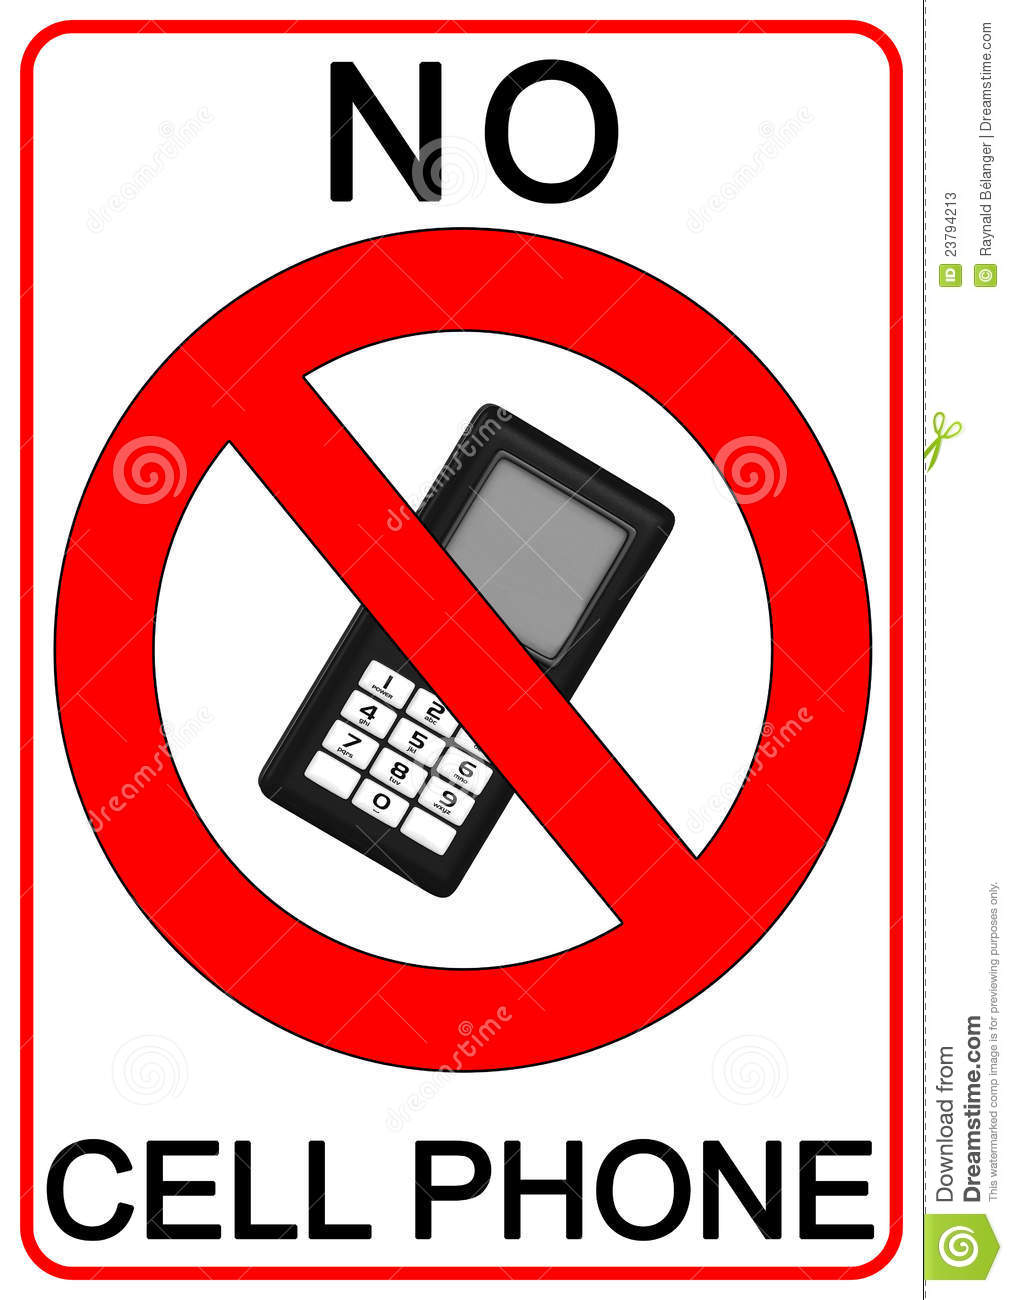 no cell phone clipart free - photo #36